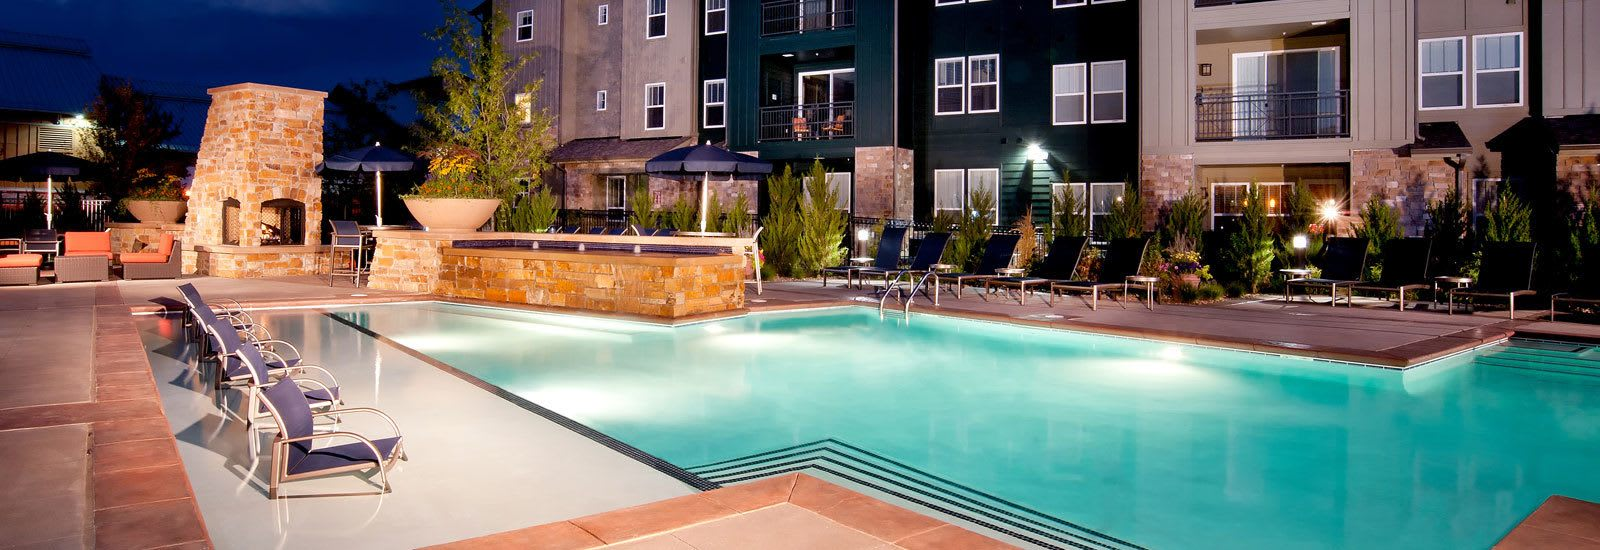 Apartments in Littleton CO